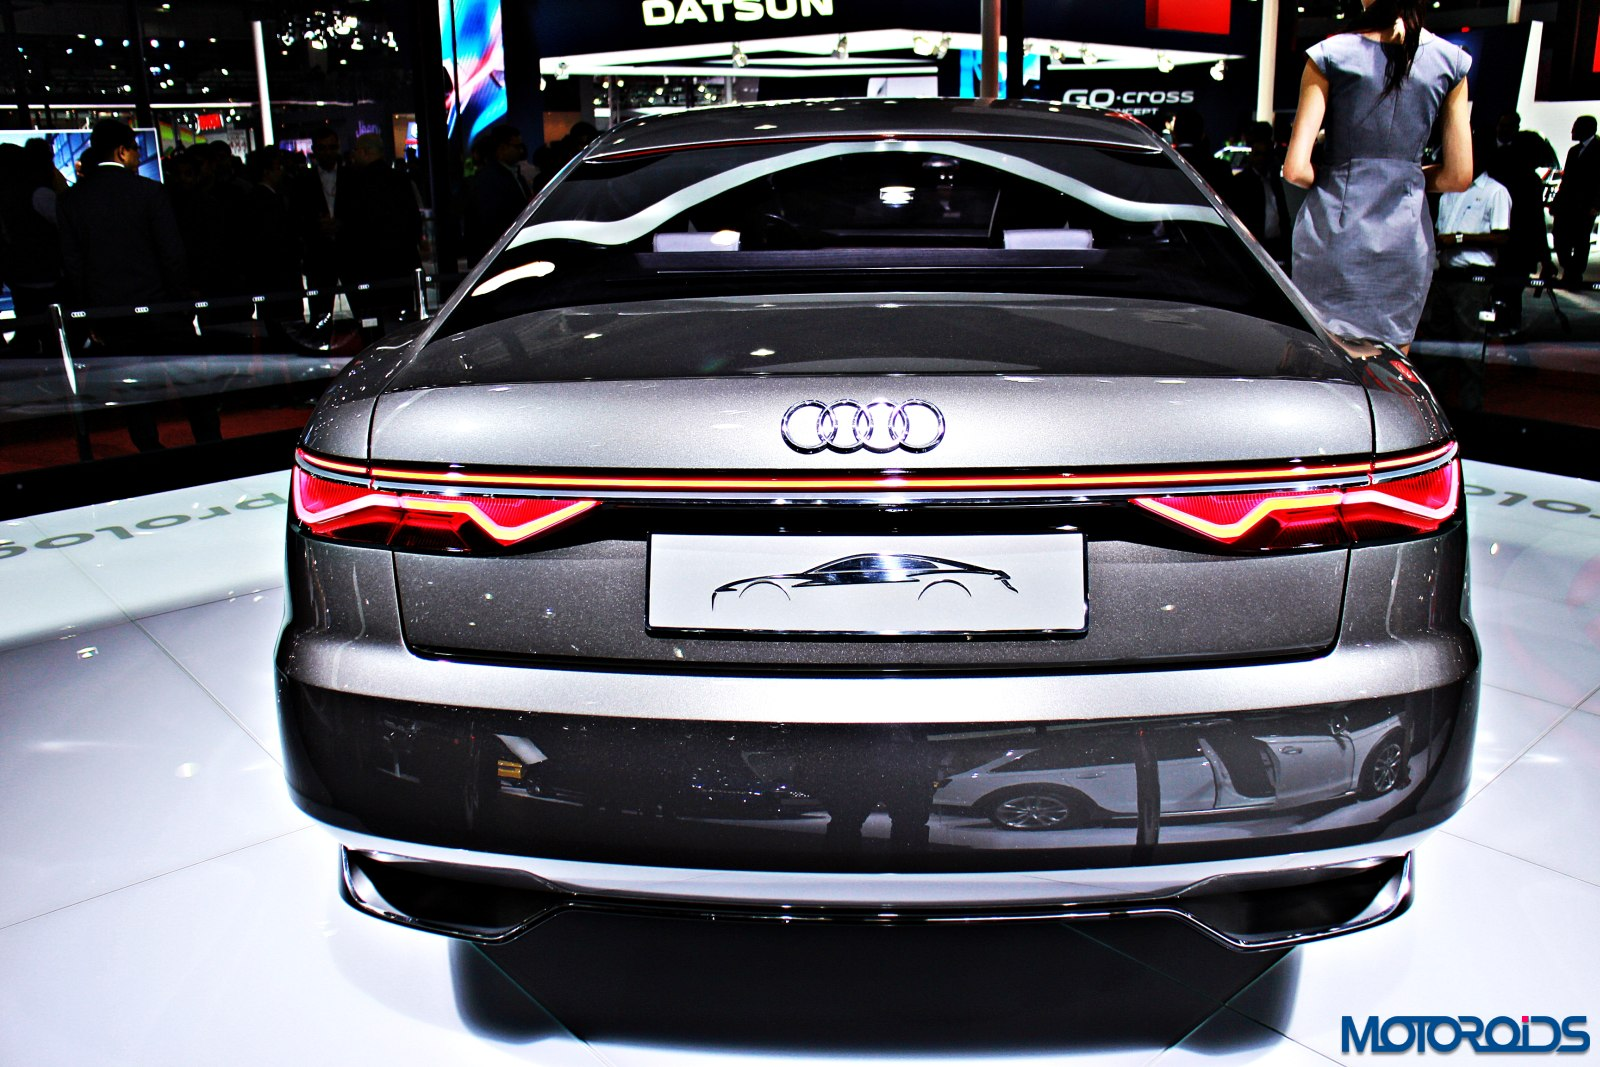 Audi Prologue concept Auto Expo 2016 (14)